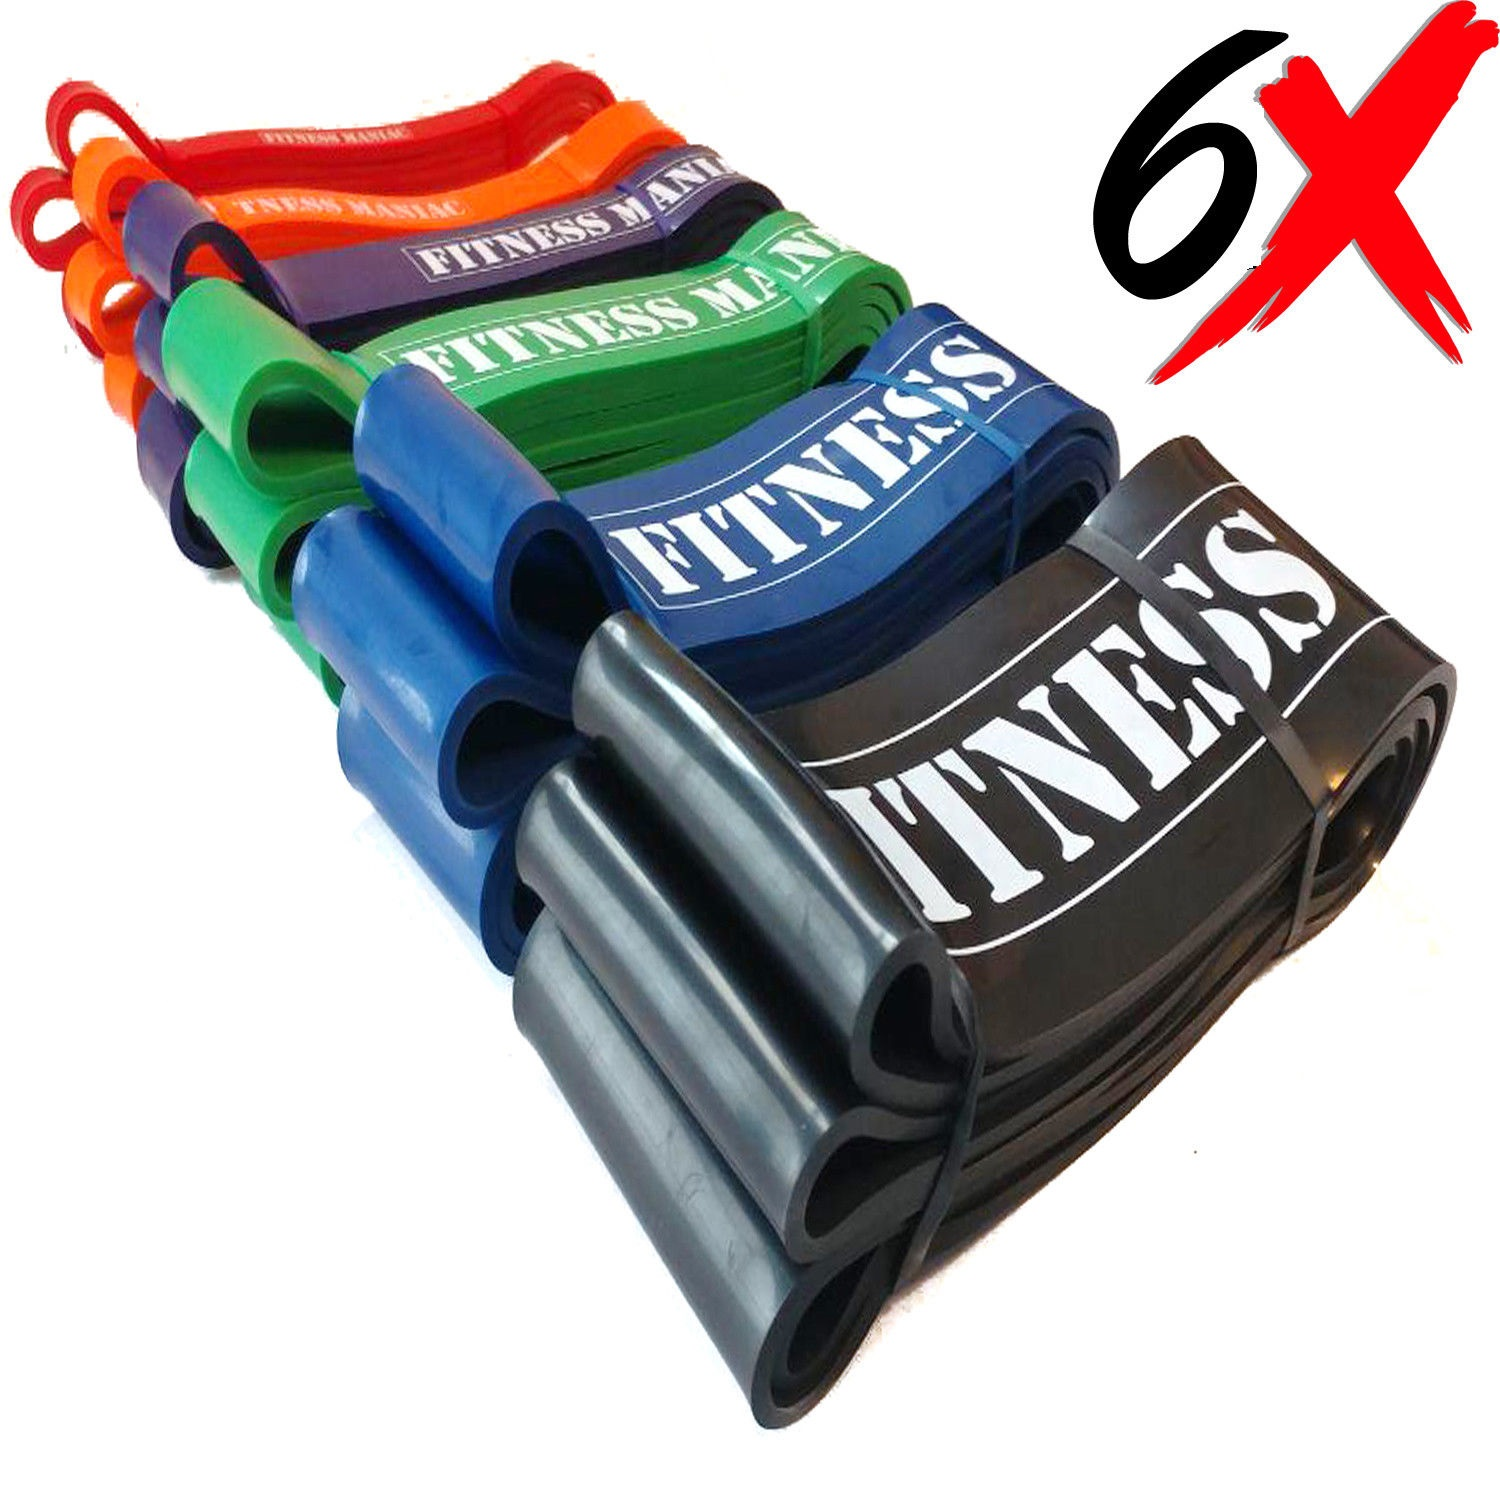 Fitness Maniac 6 Resistance Bands Set Trainers Pull Up